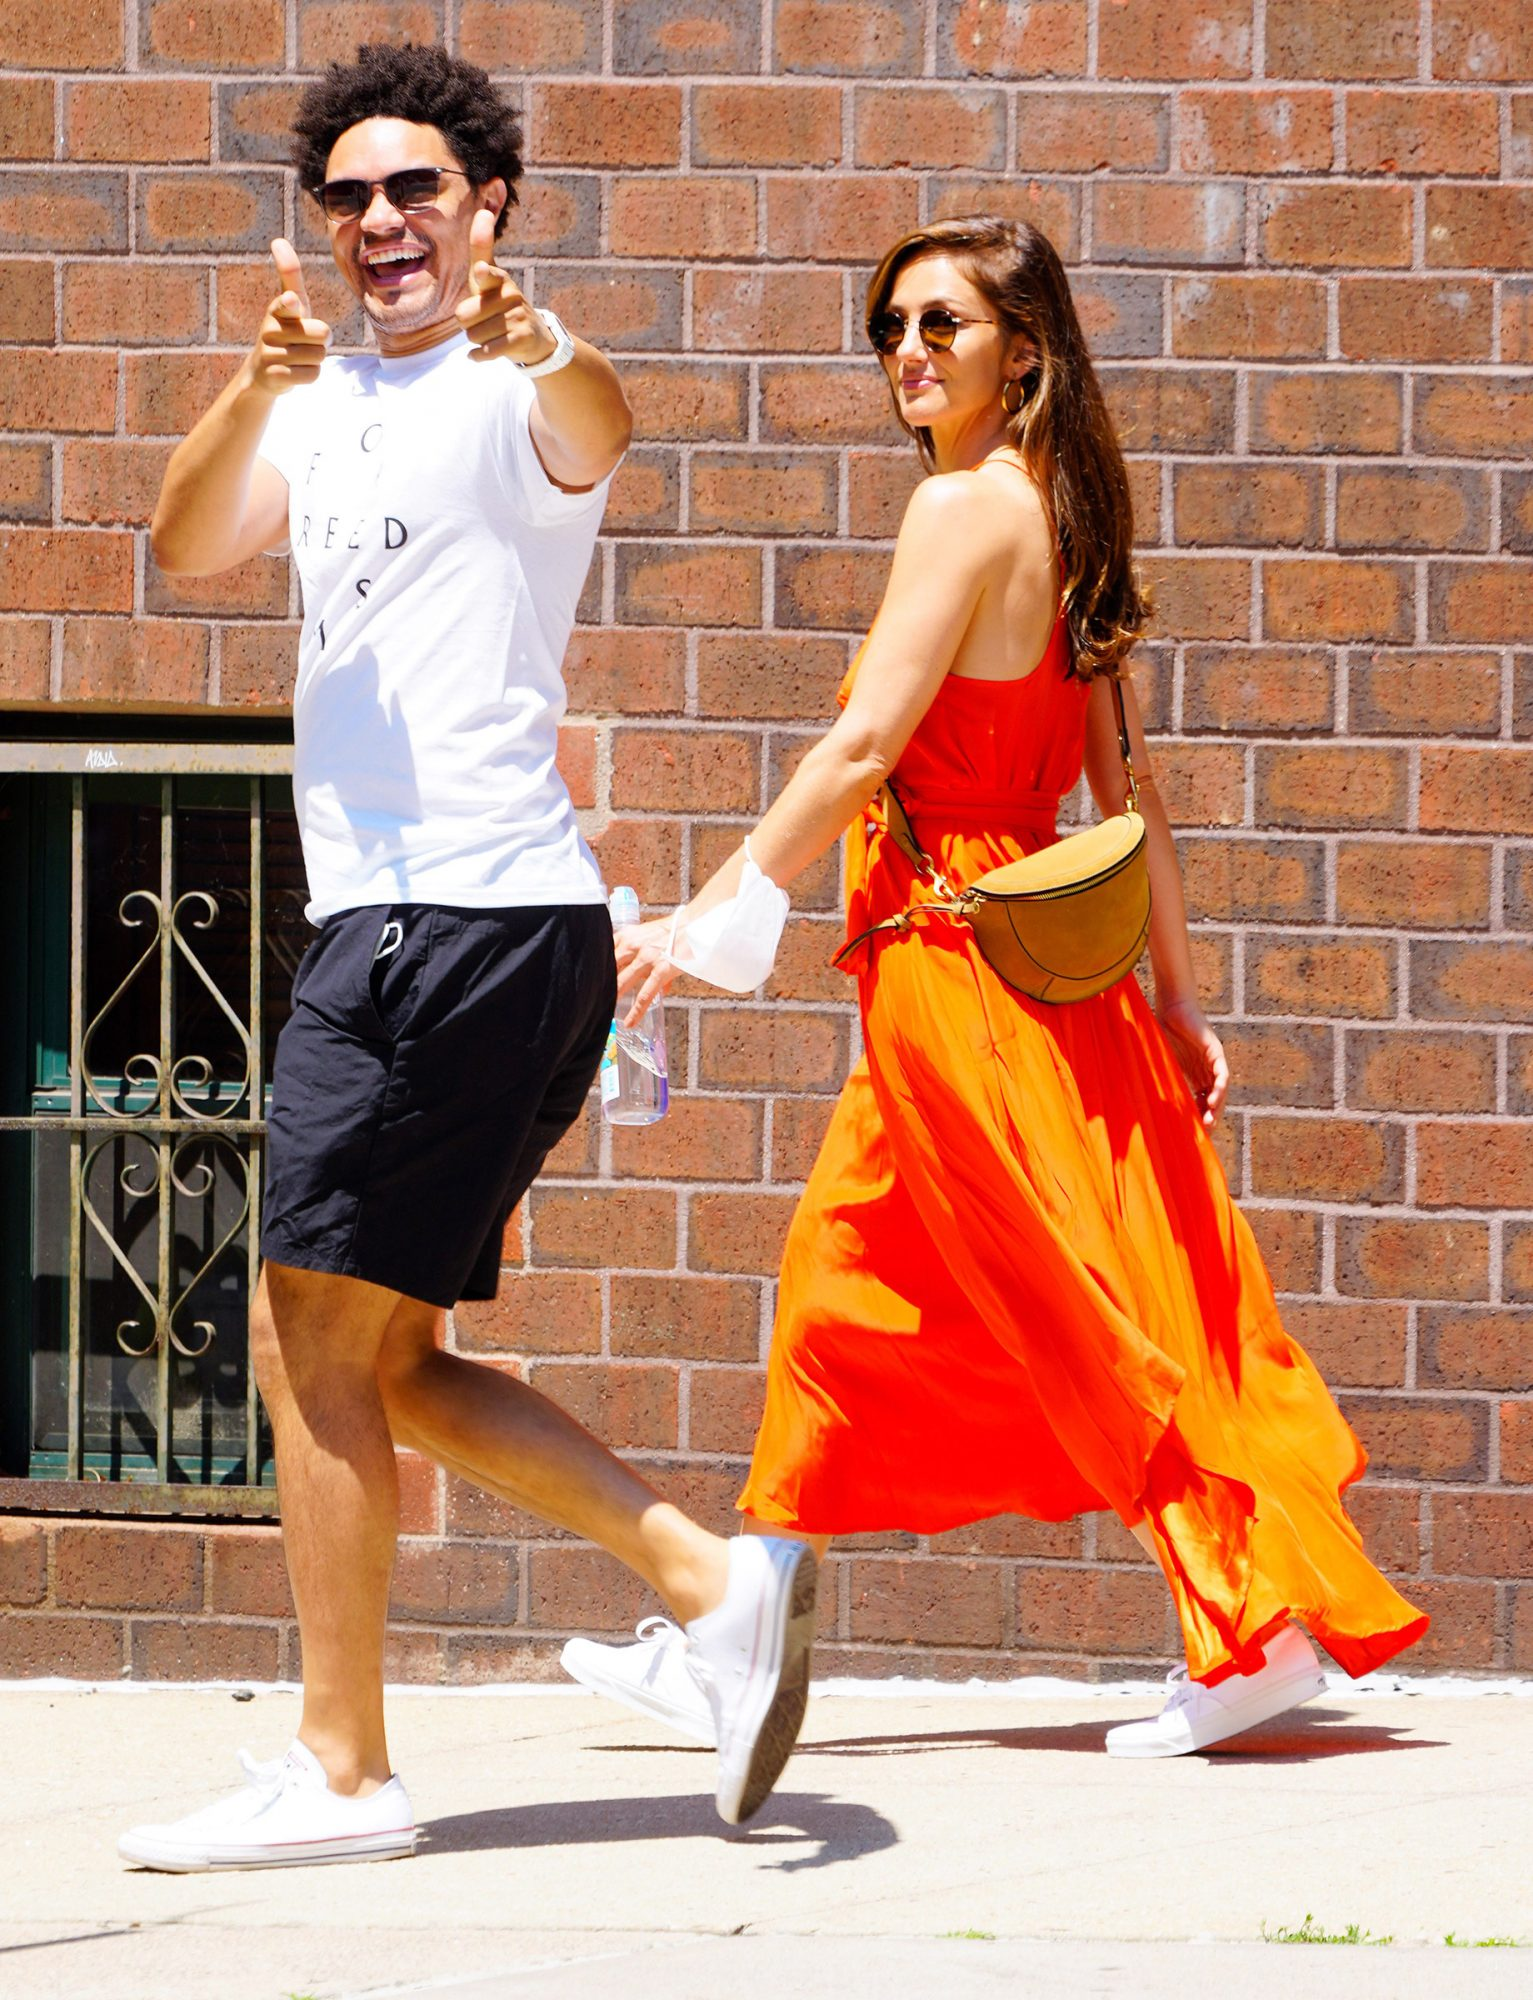 Trevor Noah and Minka Kelly Prove They Are Back Together As They Are Pictured Out on a Stroll in New York City.